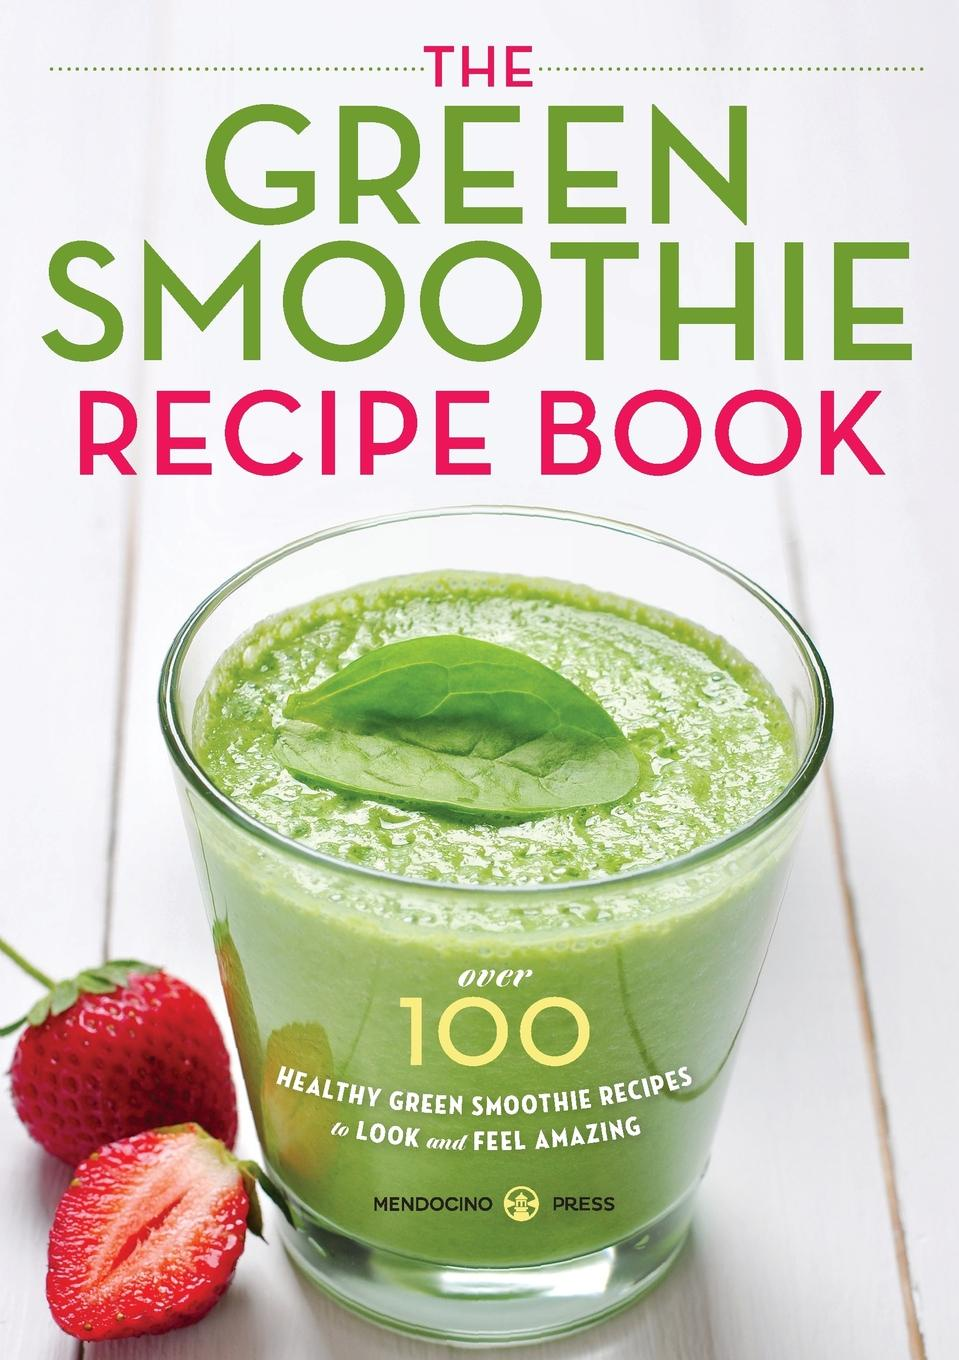 Mendocino Press Green Smoothie Recipe Book. Over 100 Healthy Green Smoothie Recipes to Look and Feel Amazing charles green h the trusted advisor fieldbook a comprehensive toolkit for leading with trust